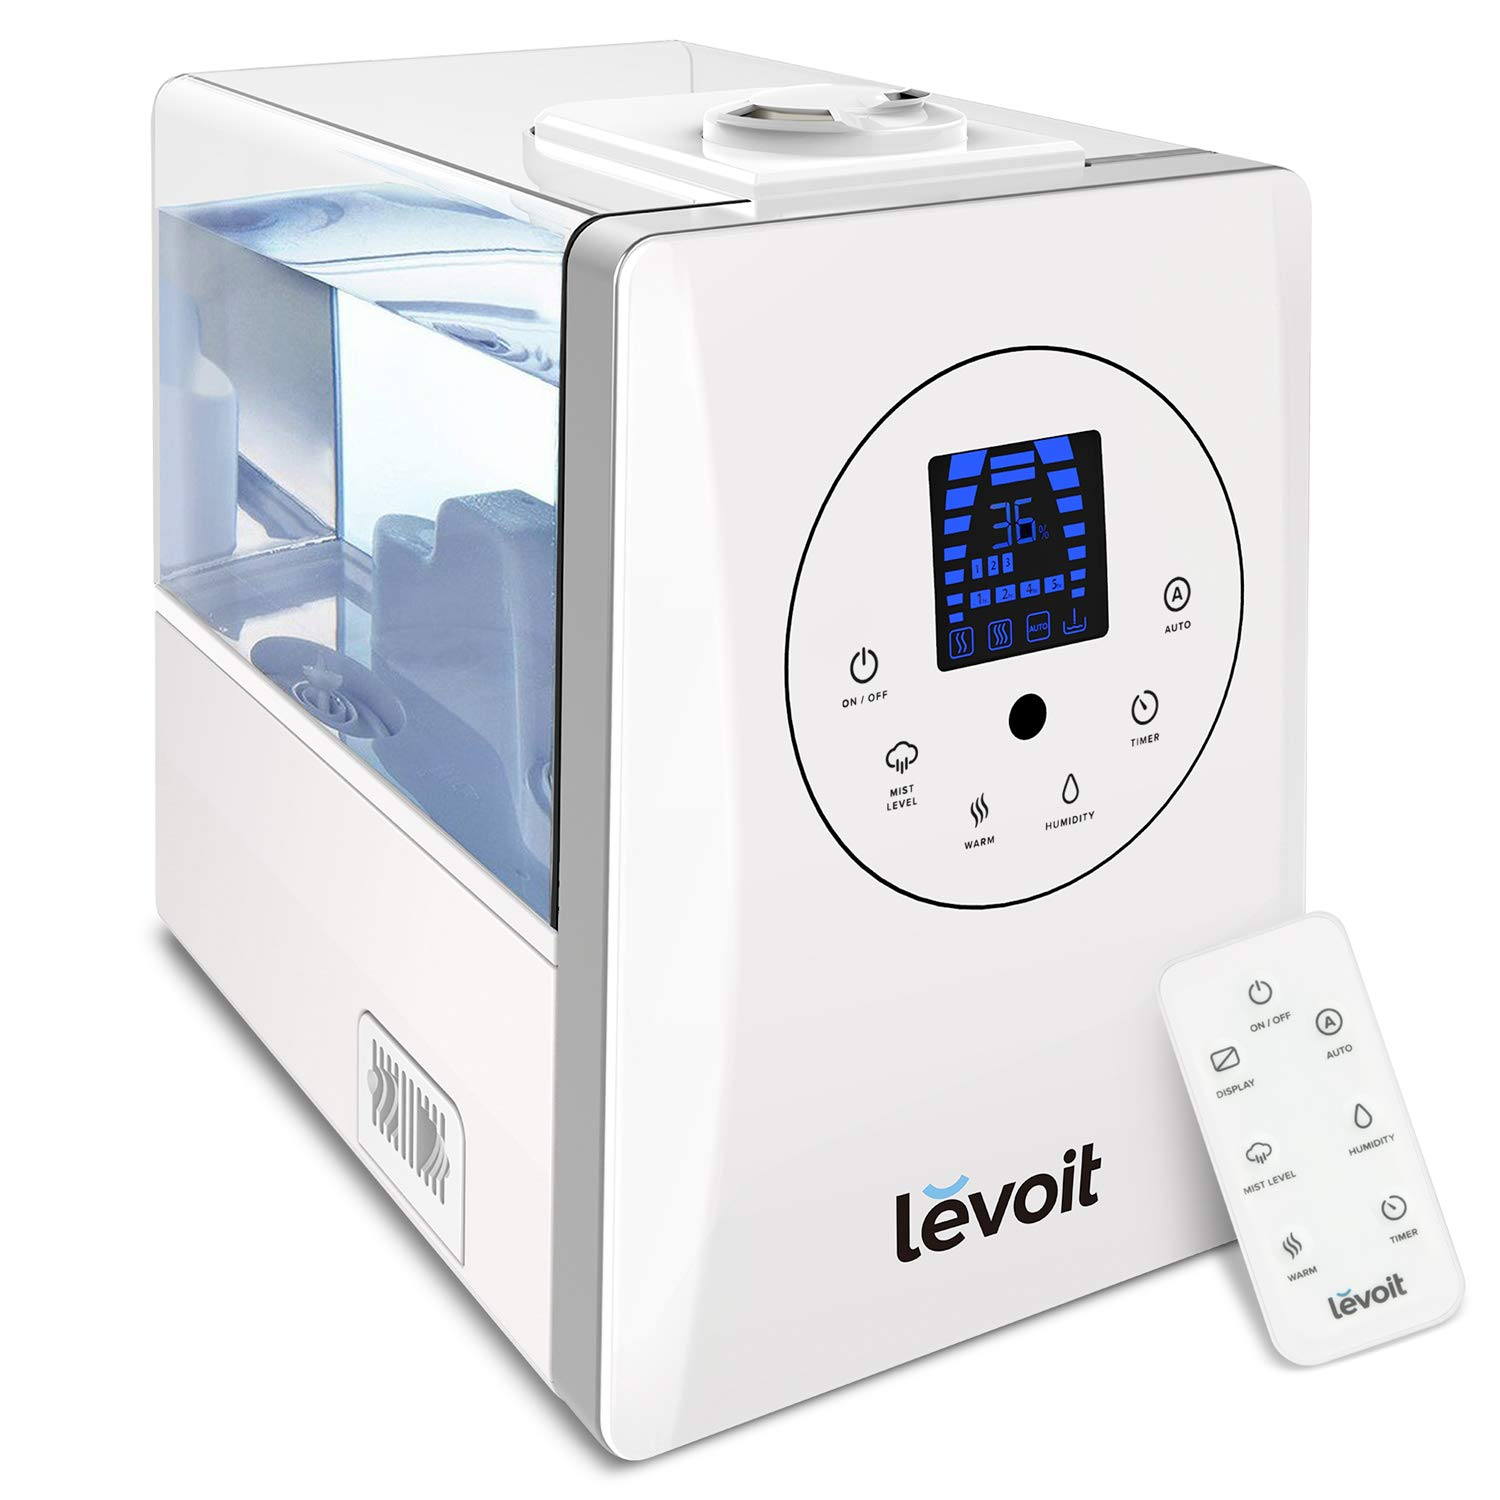 LEVOIT Humidifiers for Large Room Bedroom (6L), Warm and Cool Mist Ultrasonic Air Humidifier for Home Whole House Babies Room, Customized Humidity, Remote, Germ Free and Whisper-Quiet, 2-year Warranty by LEVOIT